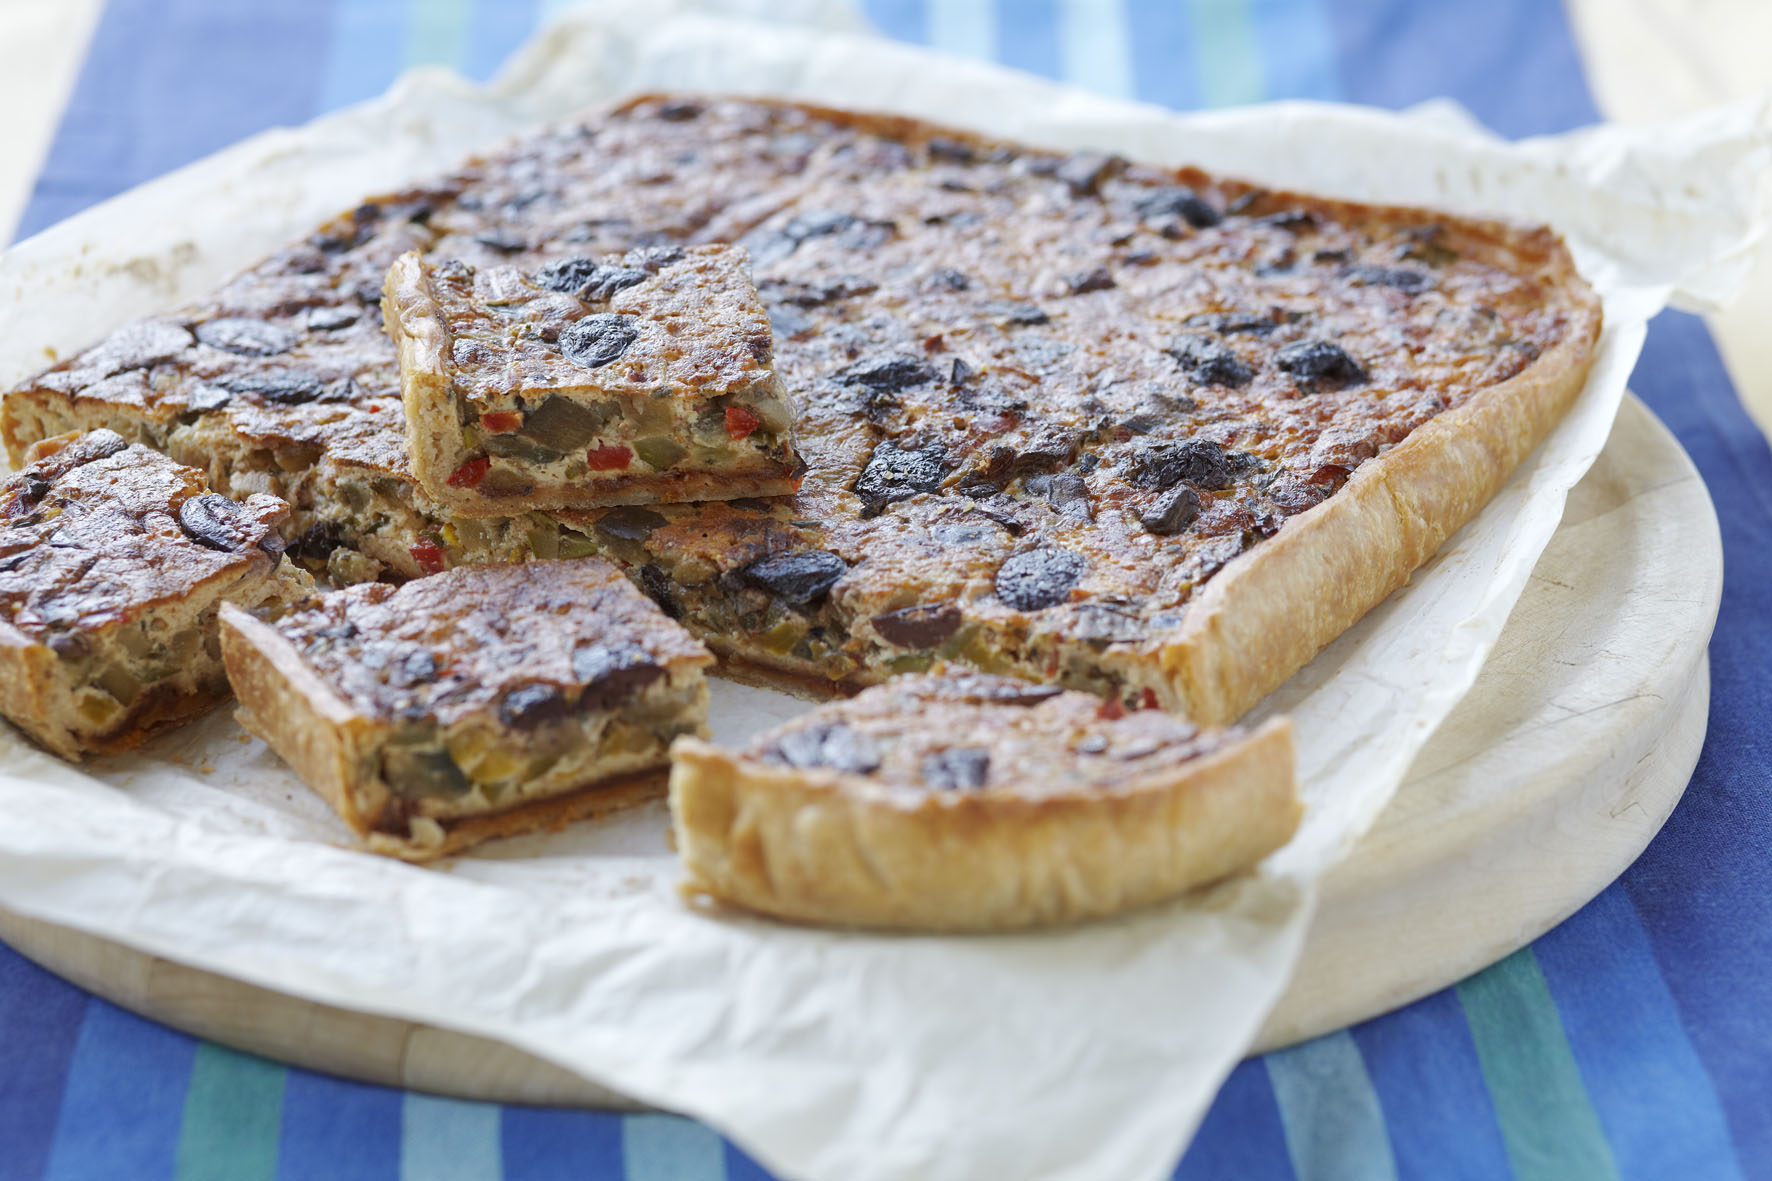 Recipe: Vegetable quiche, Mediterranean style